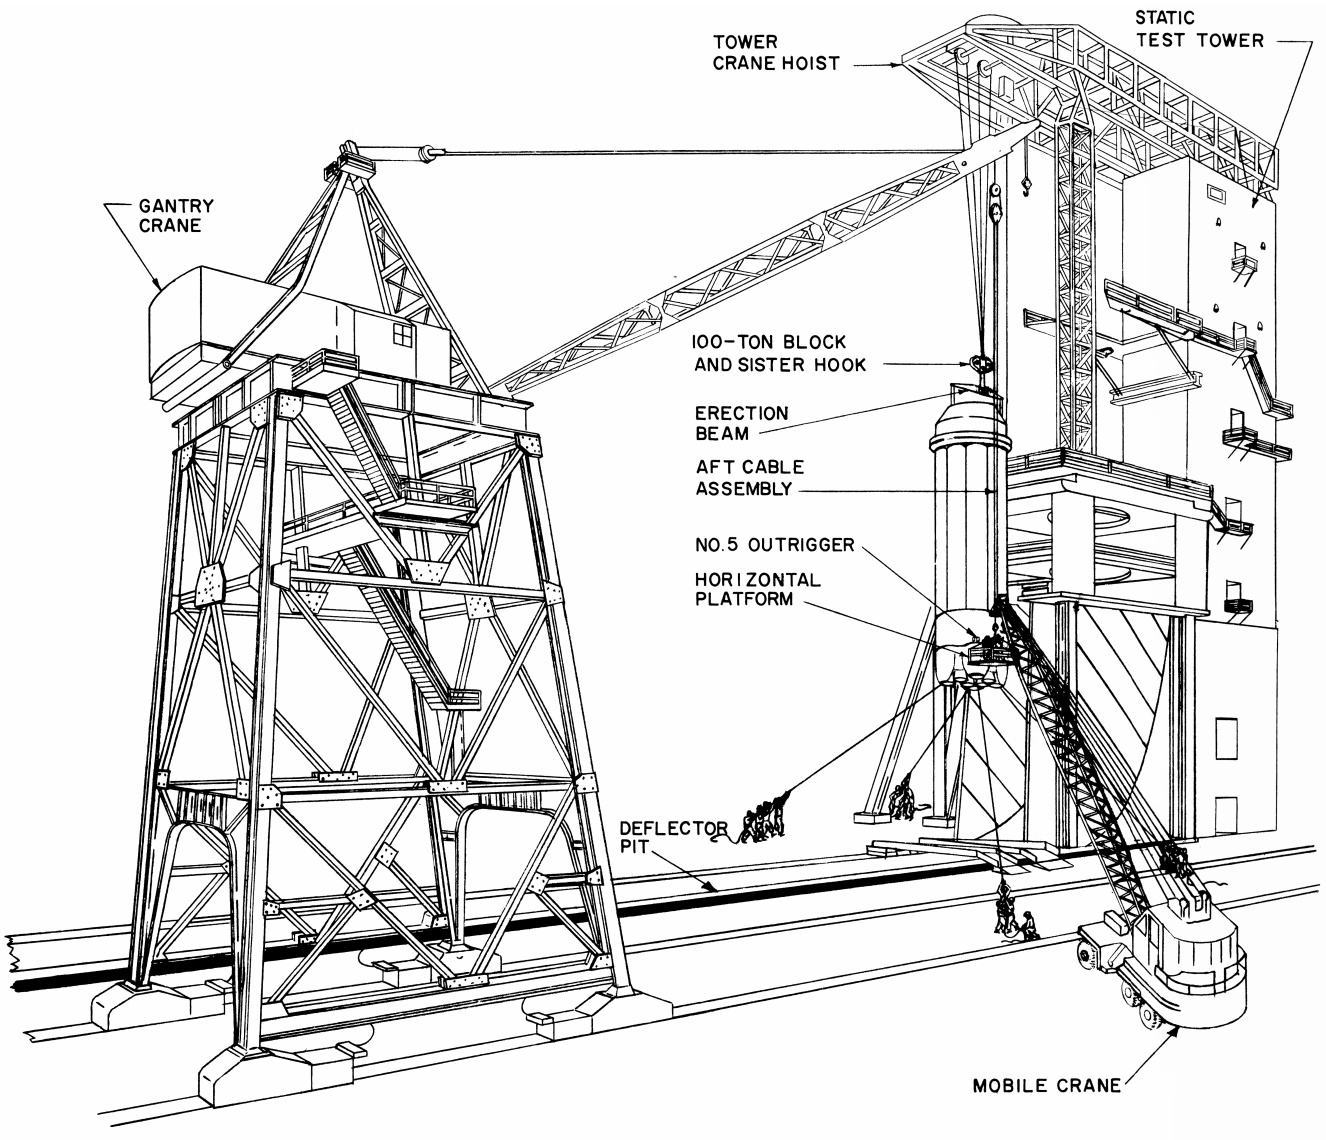 Index of /info/static-test-tower/gantry-crane